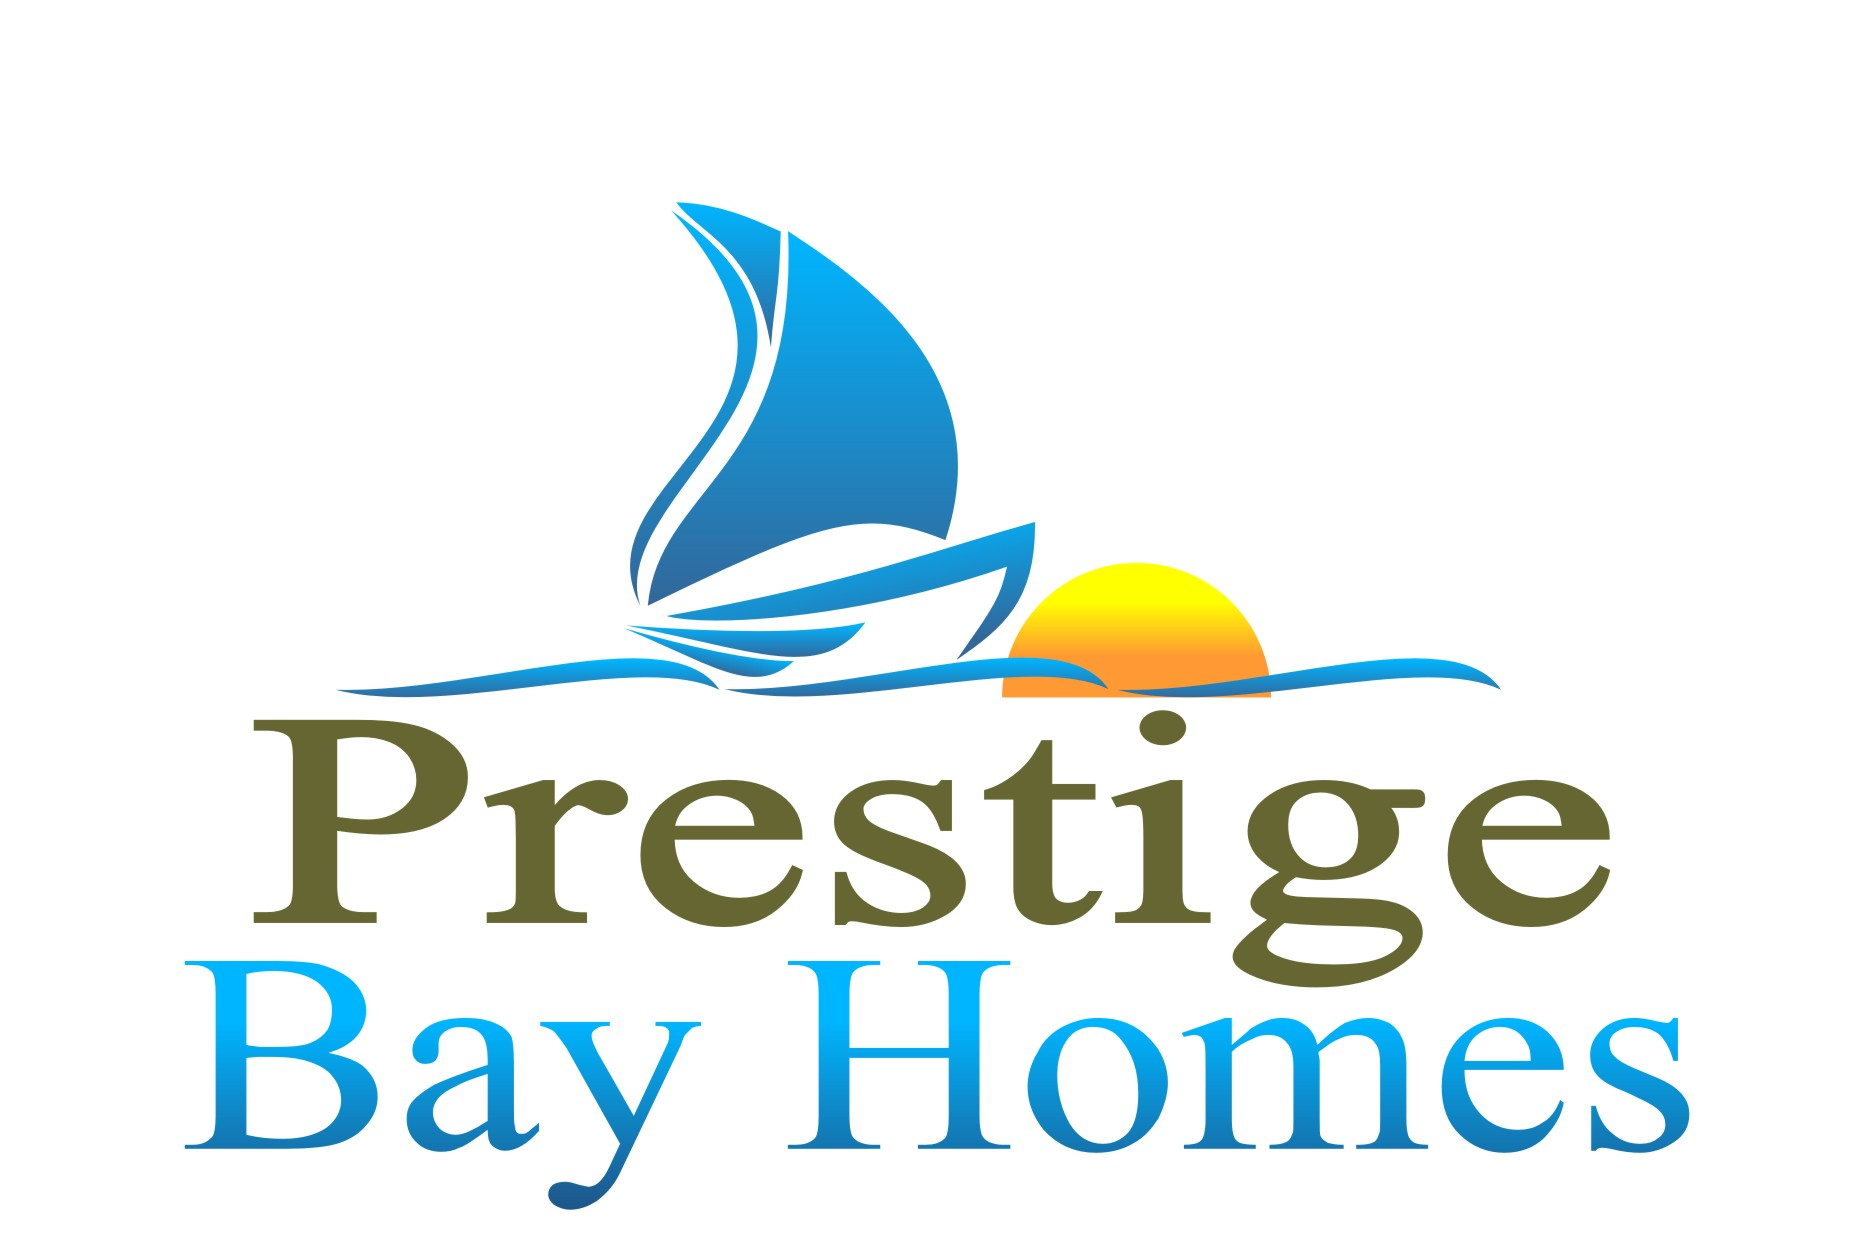 Logo Design by Robert Morgan - Entry No. 147 in the Logo Design Contest Imaginative Logo Design for Prestige Bay Homes.